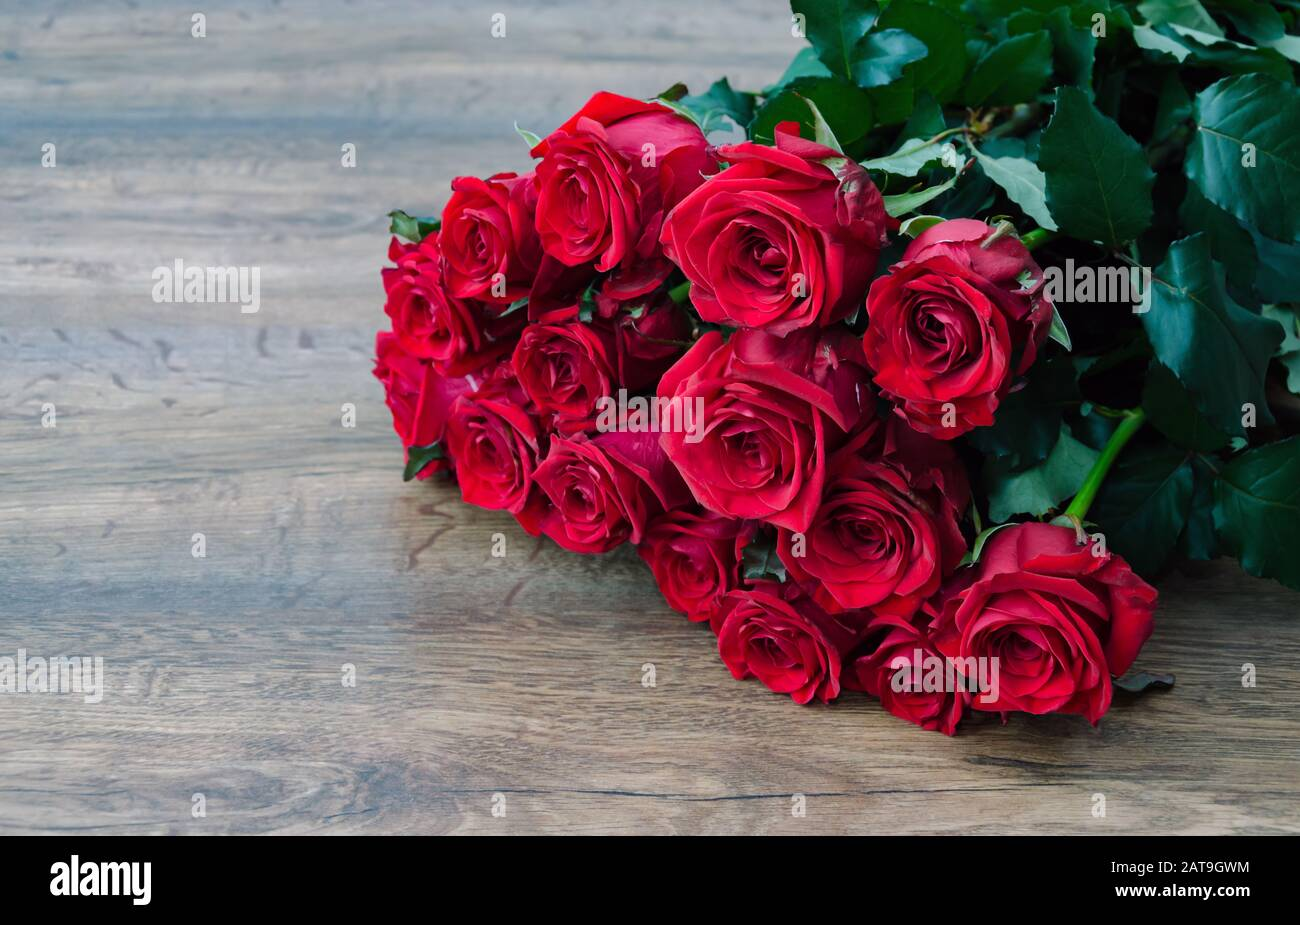 rose red, composition with red roses for the holiday, birthday, Valentine's Day, Stock Photo